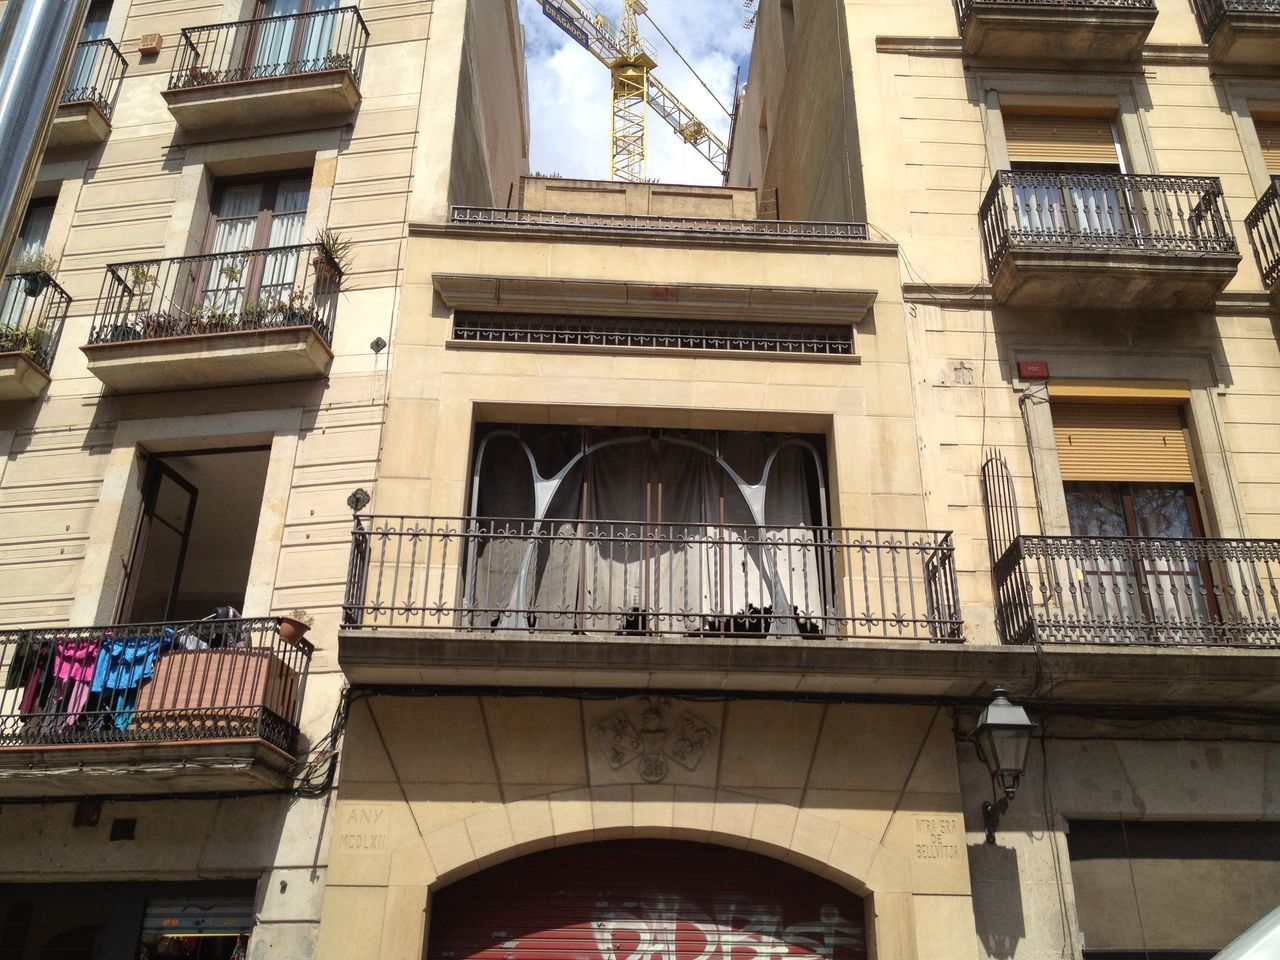 Architecture Balconies Balcony Building Exterior Built Structure Creativity Day European Apartm French Door Low Angle View No People Outdoors Ramblas Sky Street Streetphotography View Of Window Window